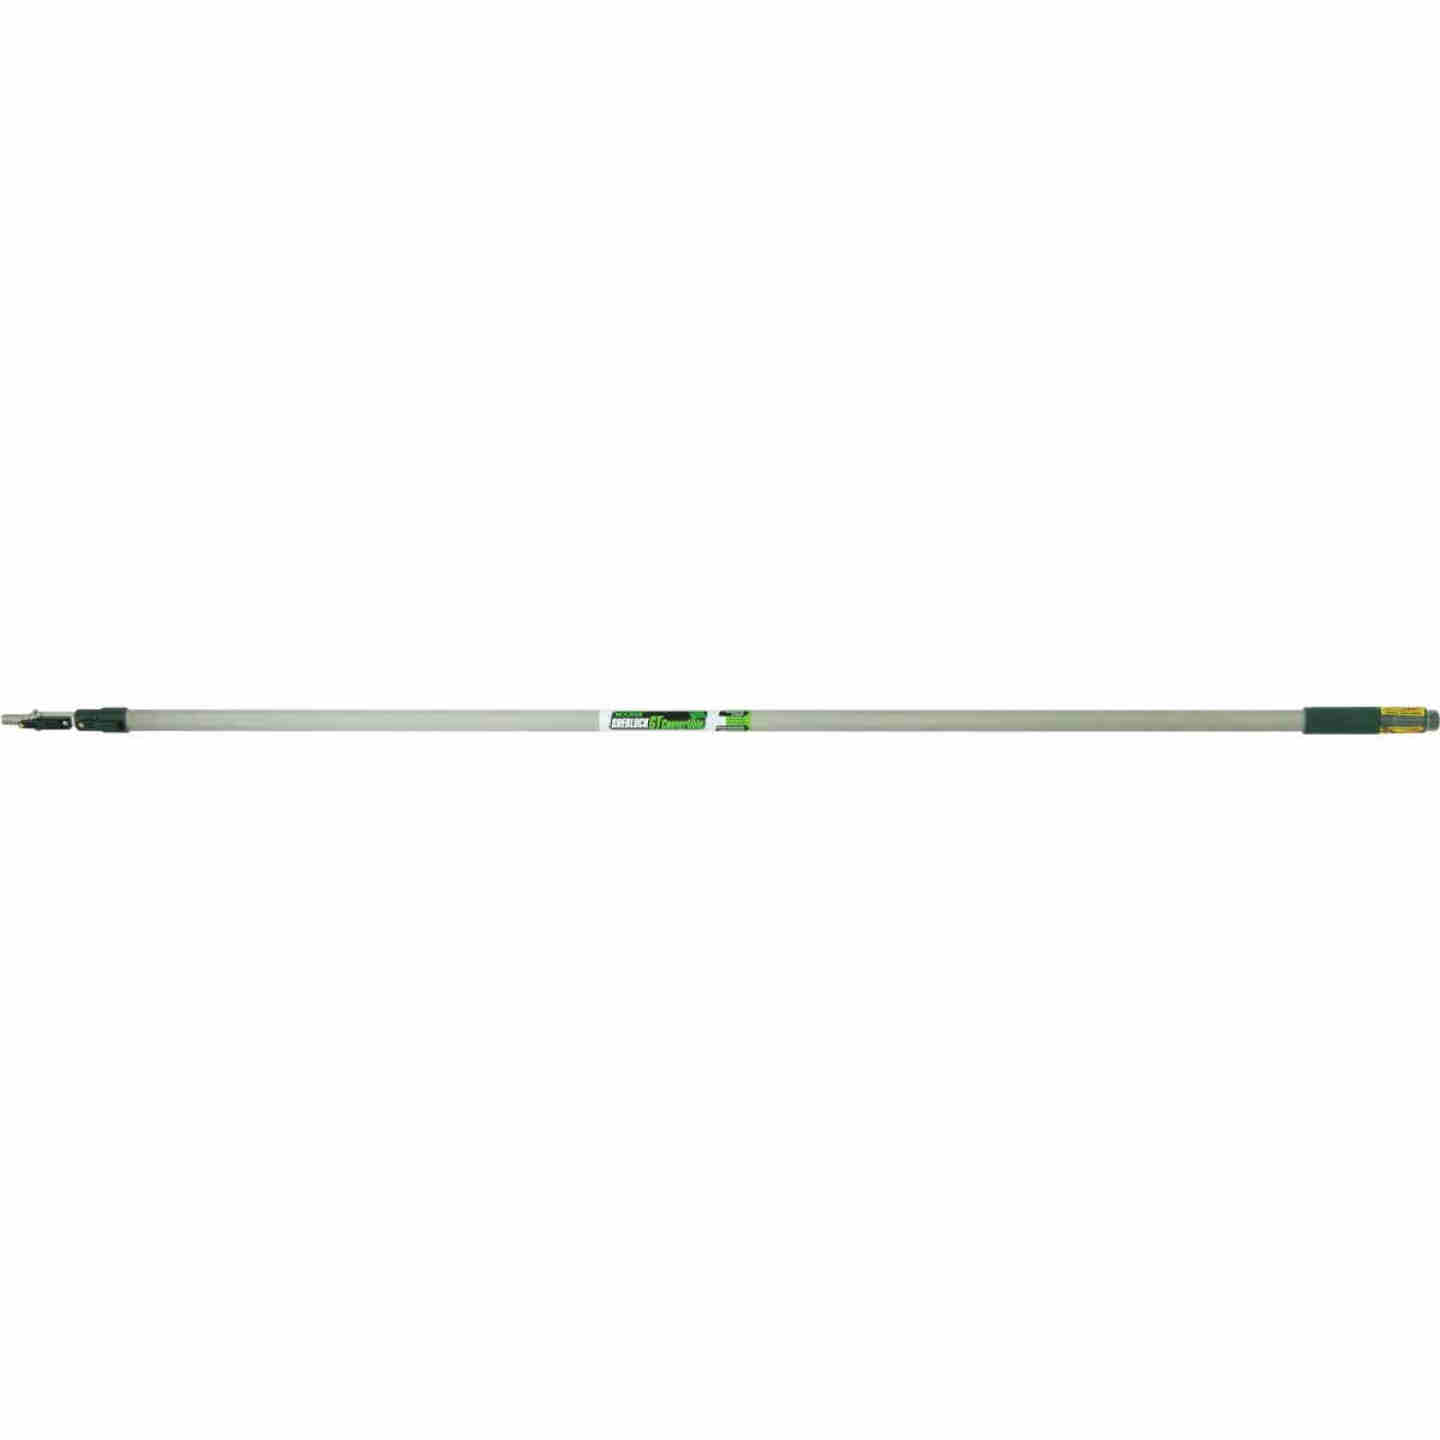 Wooster Sherlock GT 6 Ft. To 12 Ft. Convertible Extension Pole Image 1